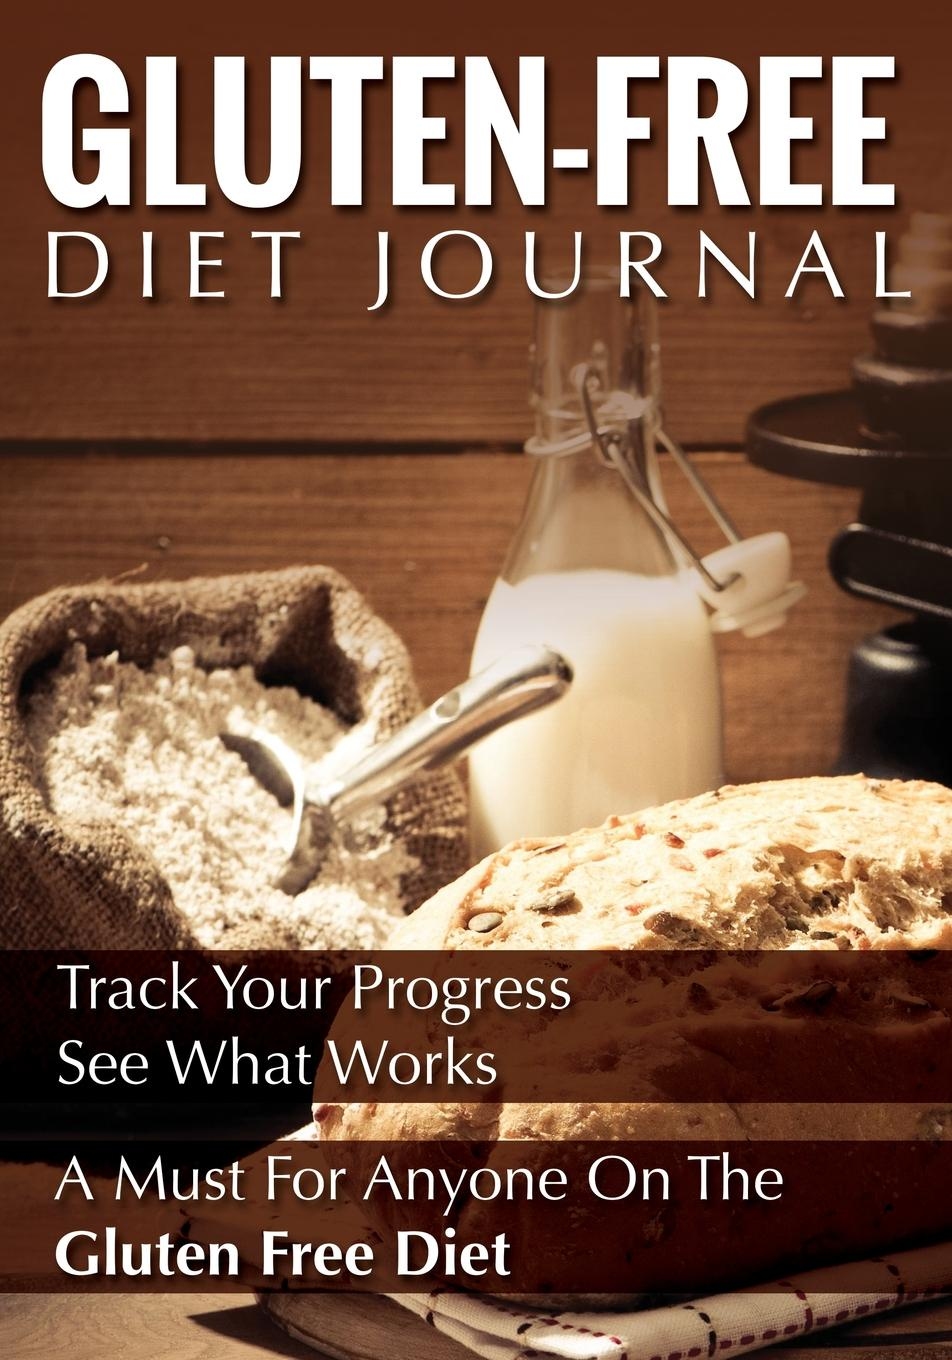 Speedy Publishing LLC Gluten-Free Diet Journal. Track Your Progress See What Works: A Must for Anyone on the Gluten Free Diet 100 a free